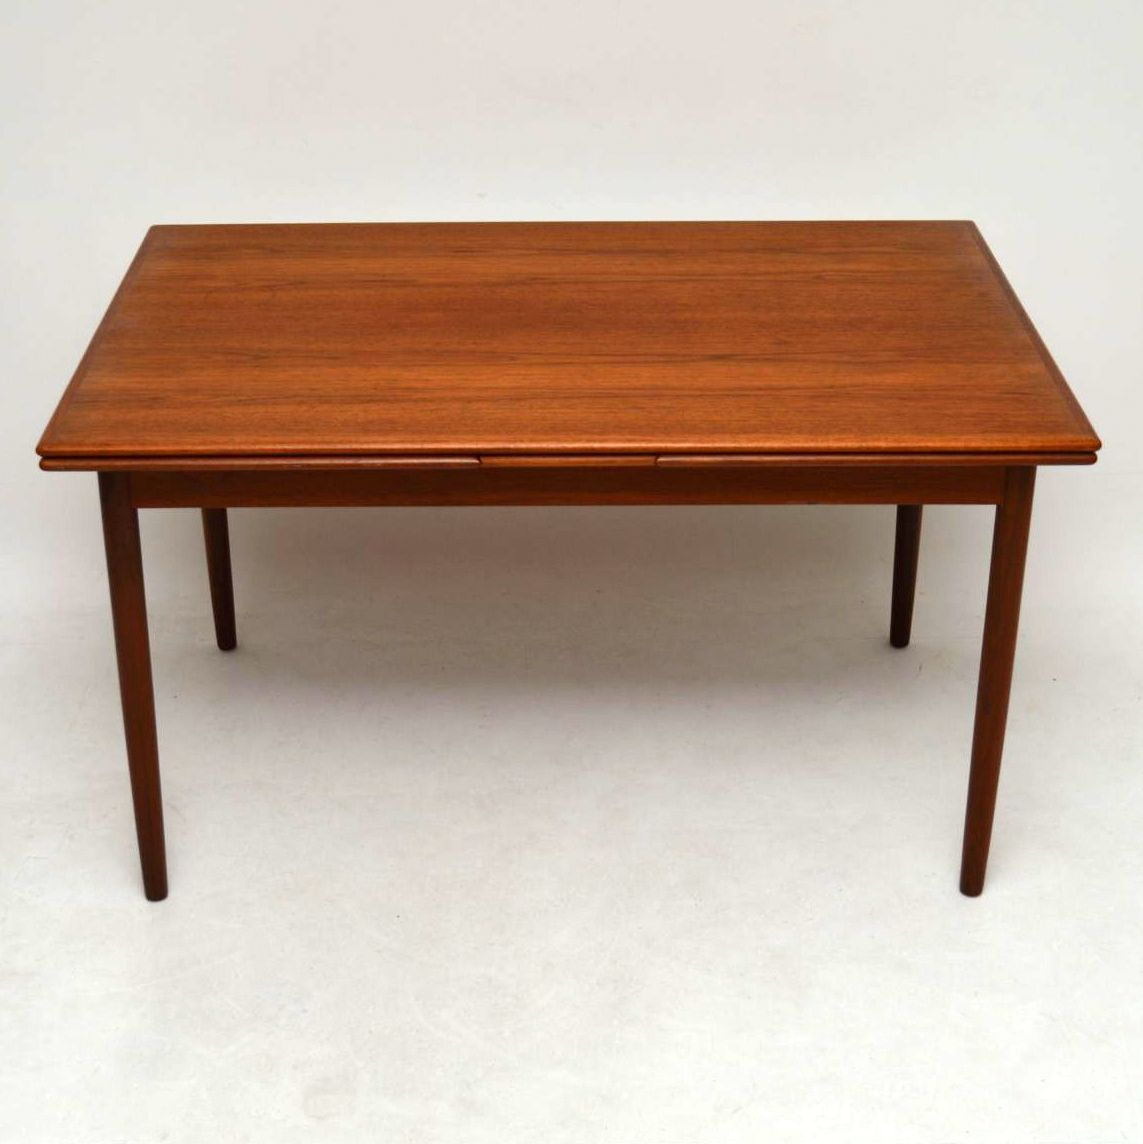 Danish Teak Retro Dining Table Vintage 1960 S Retrospective Interiors Vintage